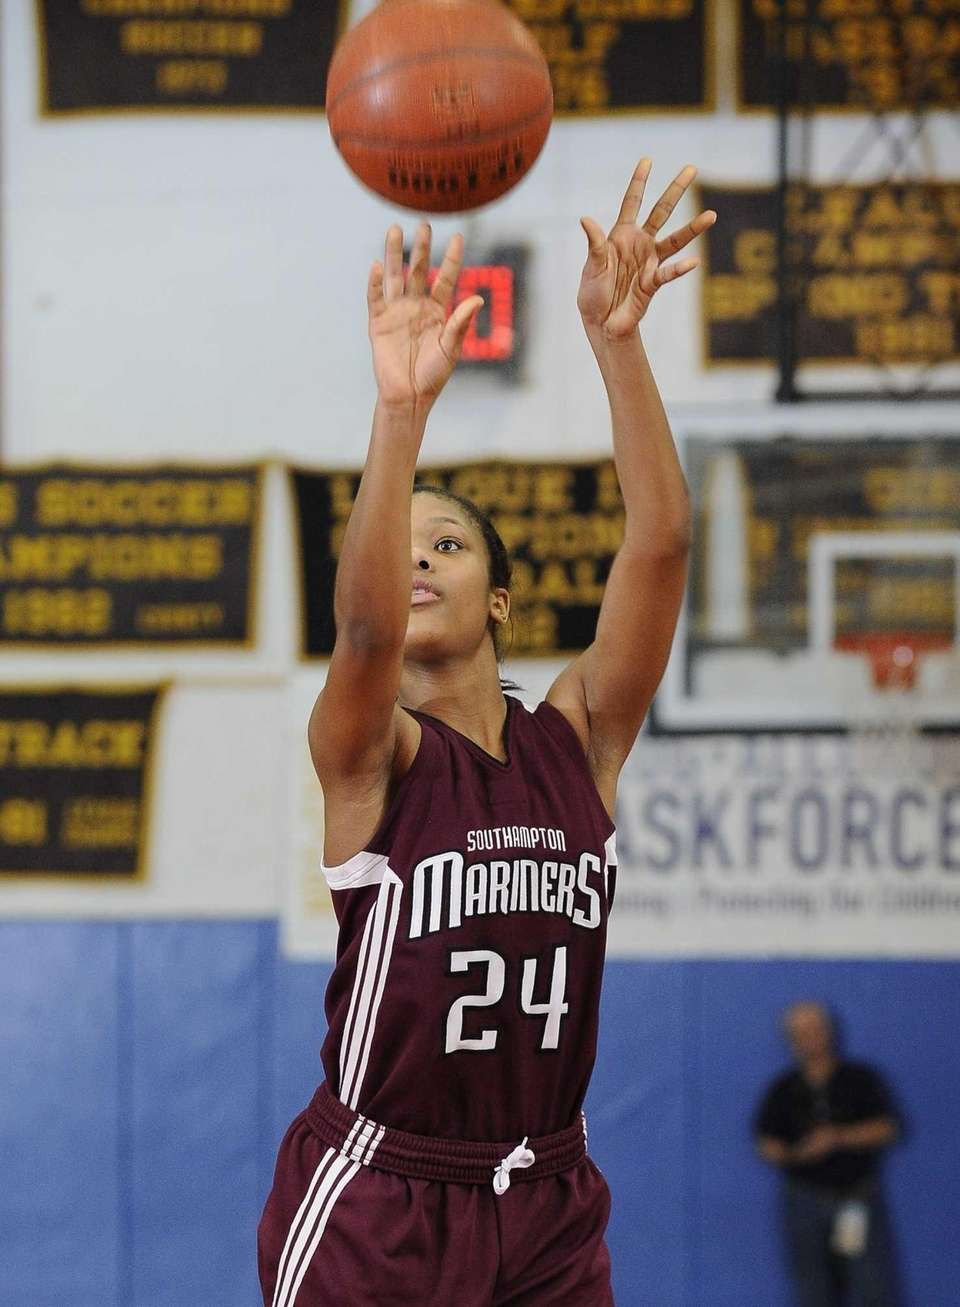 Southampton's Paris Hodges shoots a free throw against